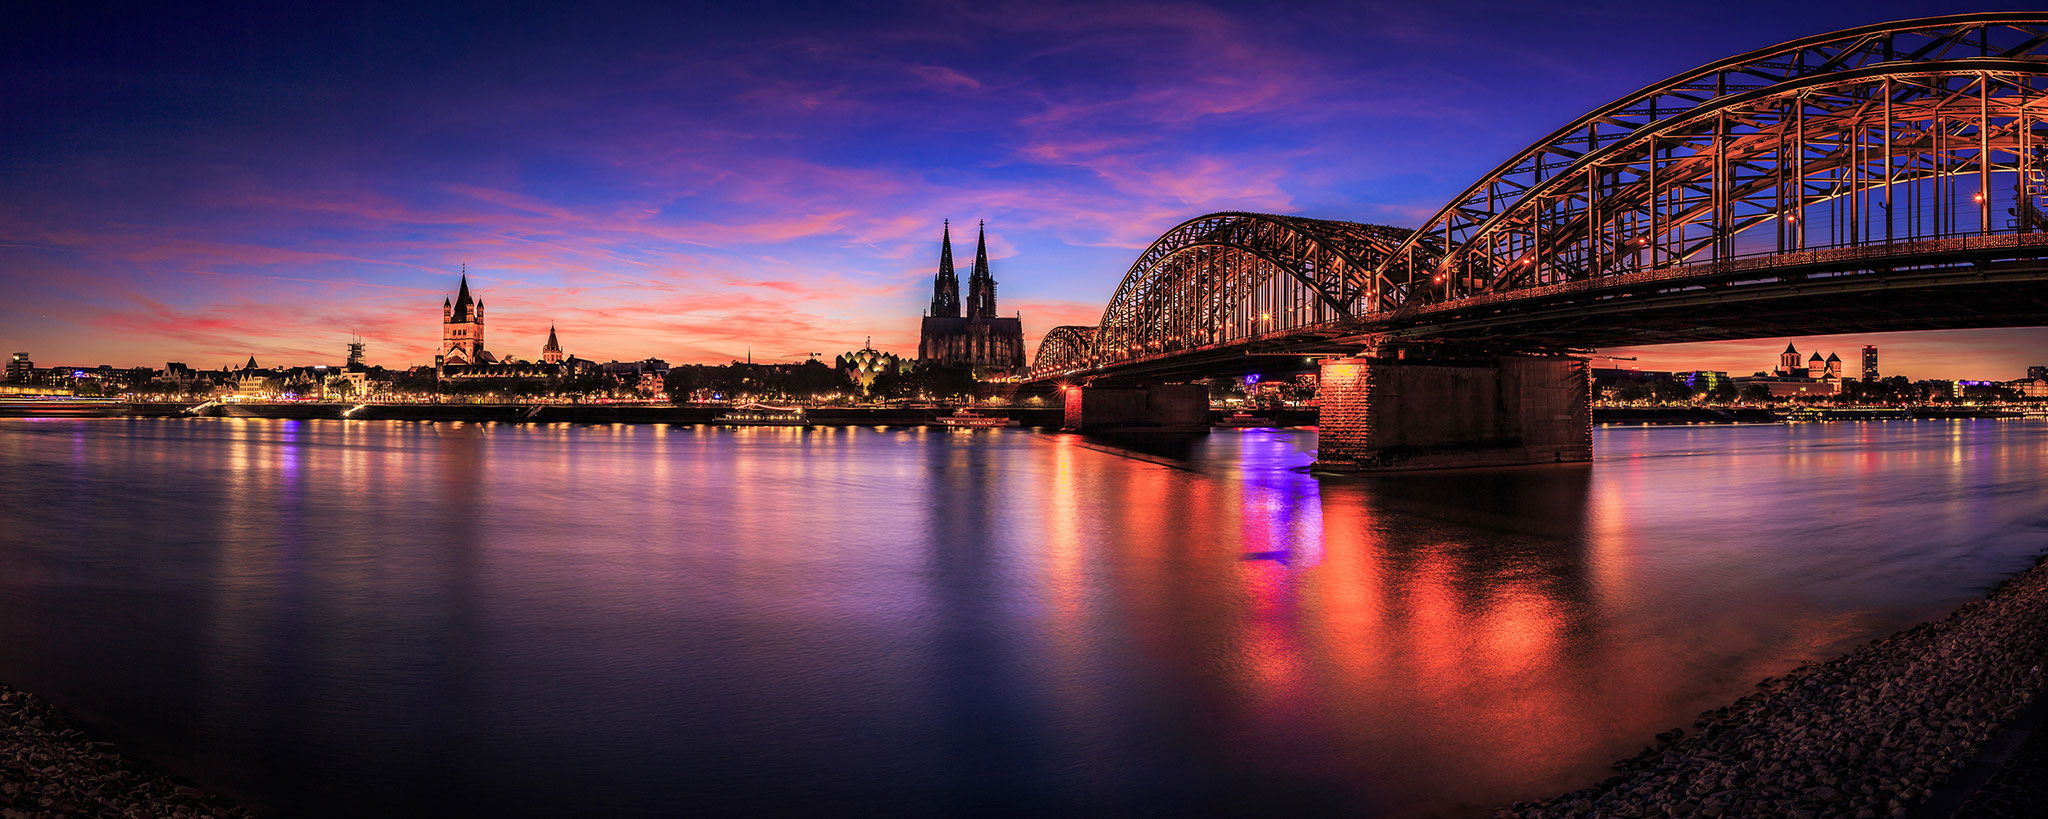 Cologne, Germany, Martijn van Steenbergen, © 2018